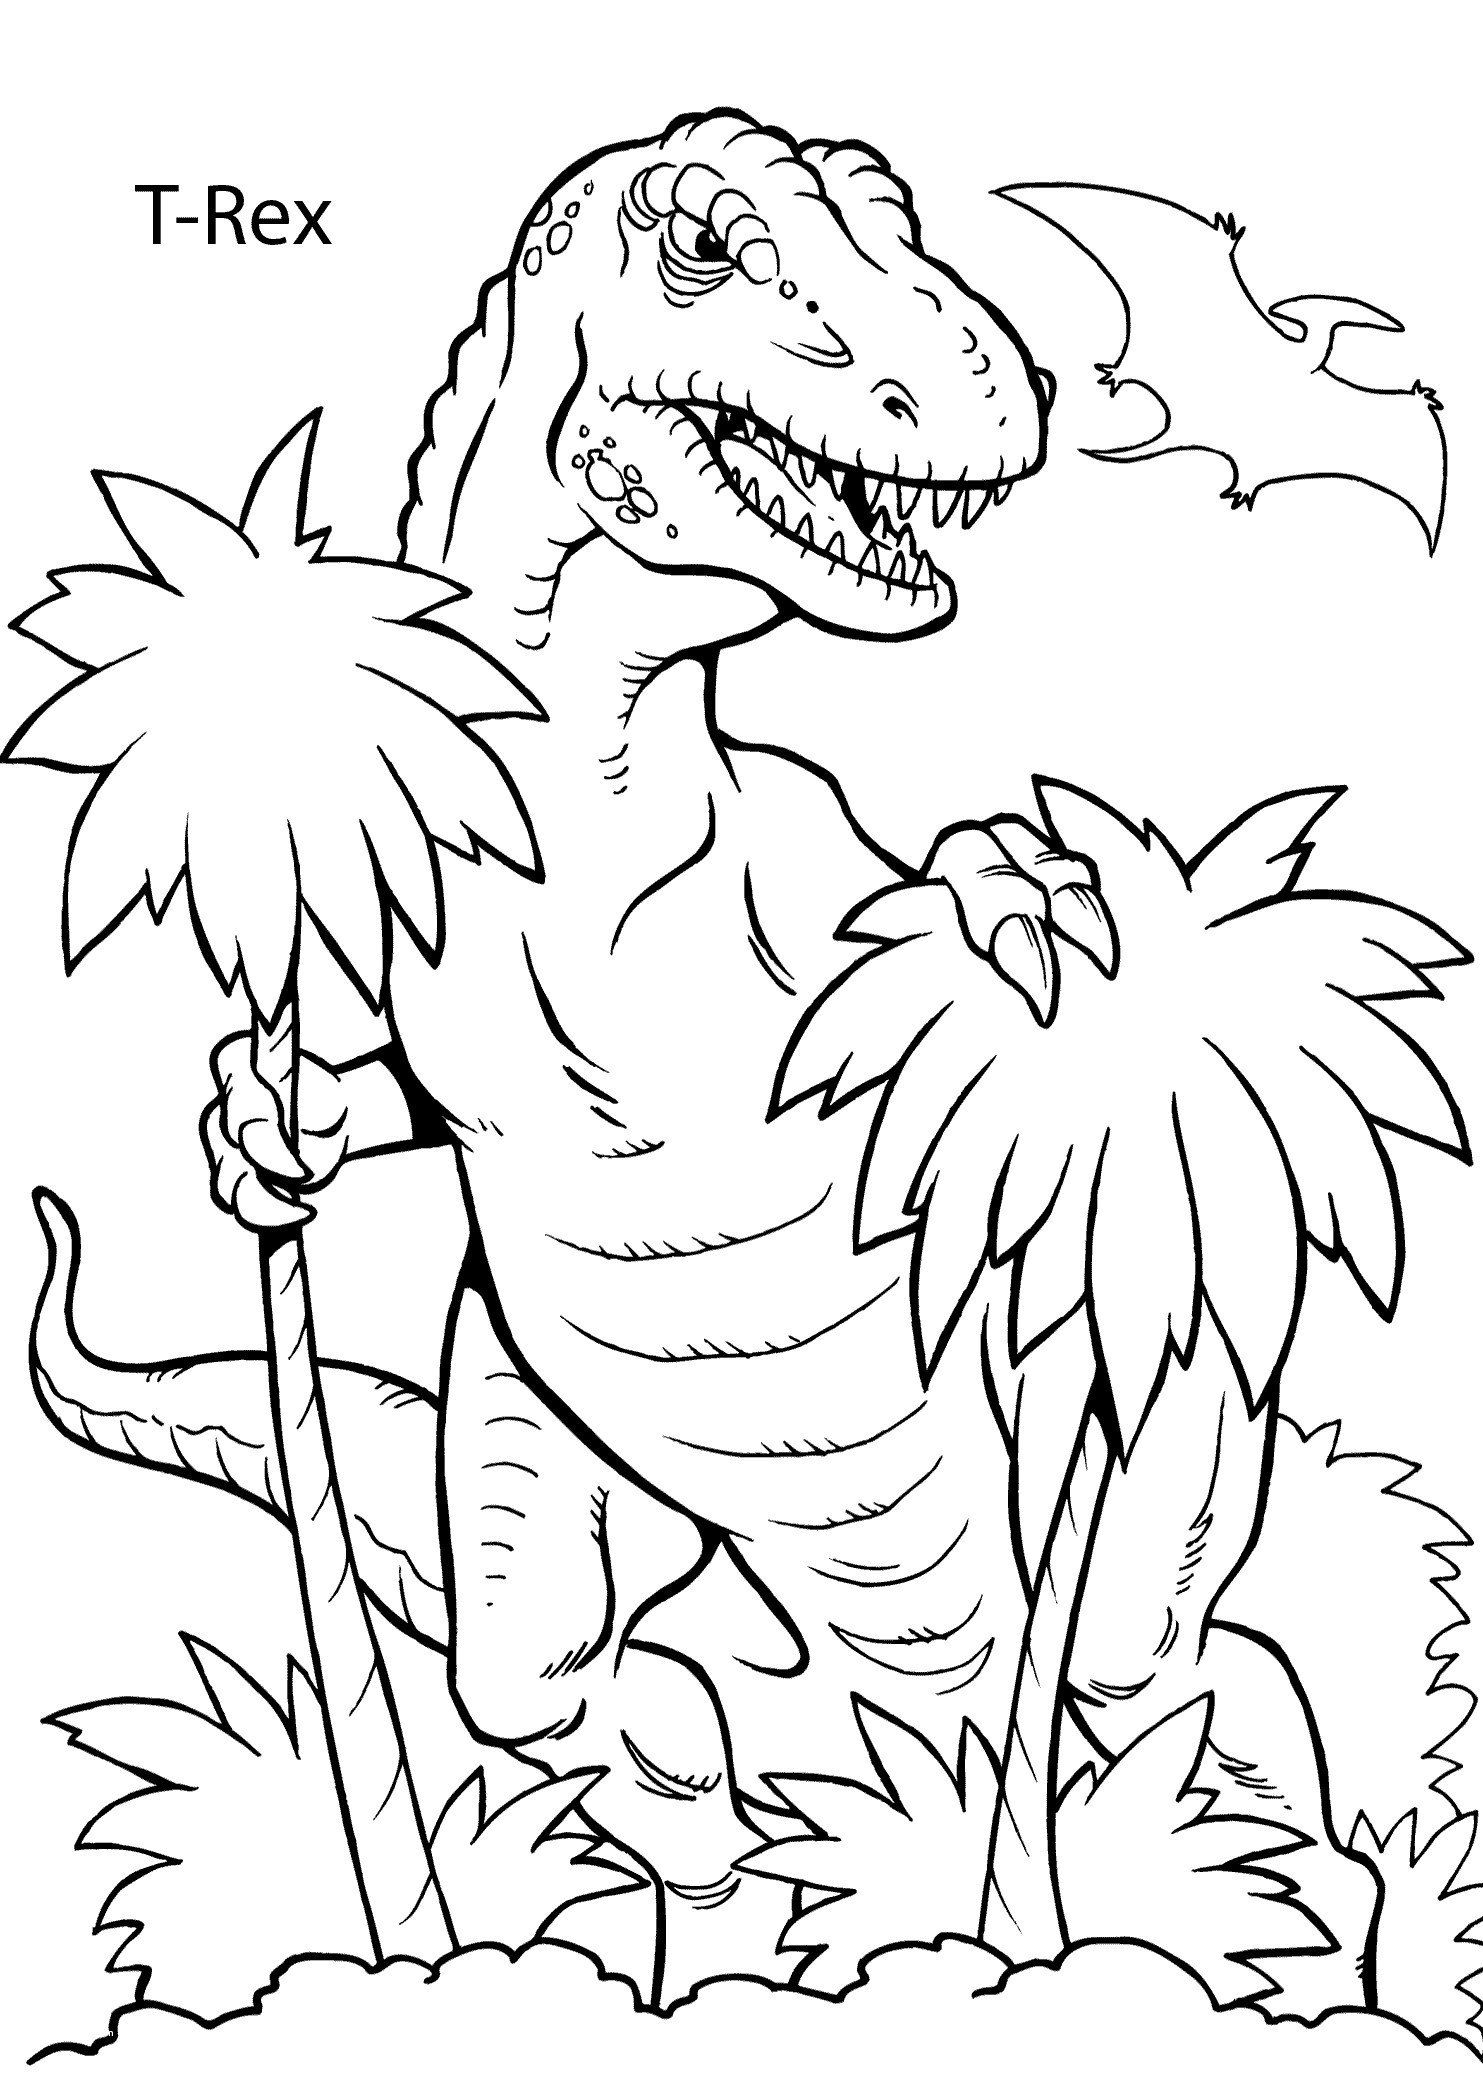 Dinosaur Coloring Pages To Print Coloring Pages Baby Dinosaur To Color Baby In 2020 Spring Coloring Pages Animal Coloring Pages Dinosaur Coloring Sheets